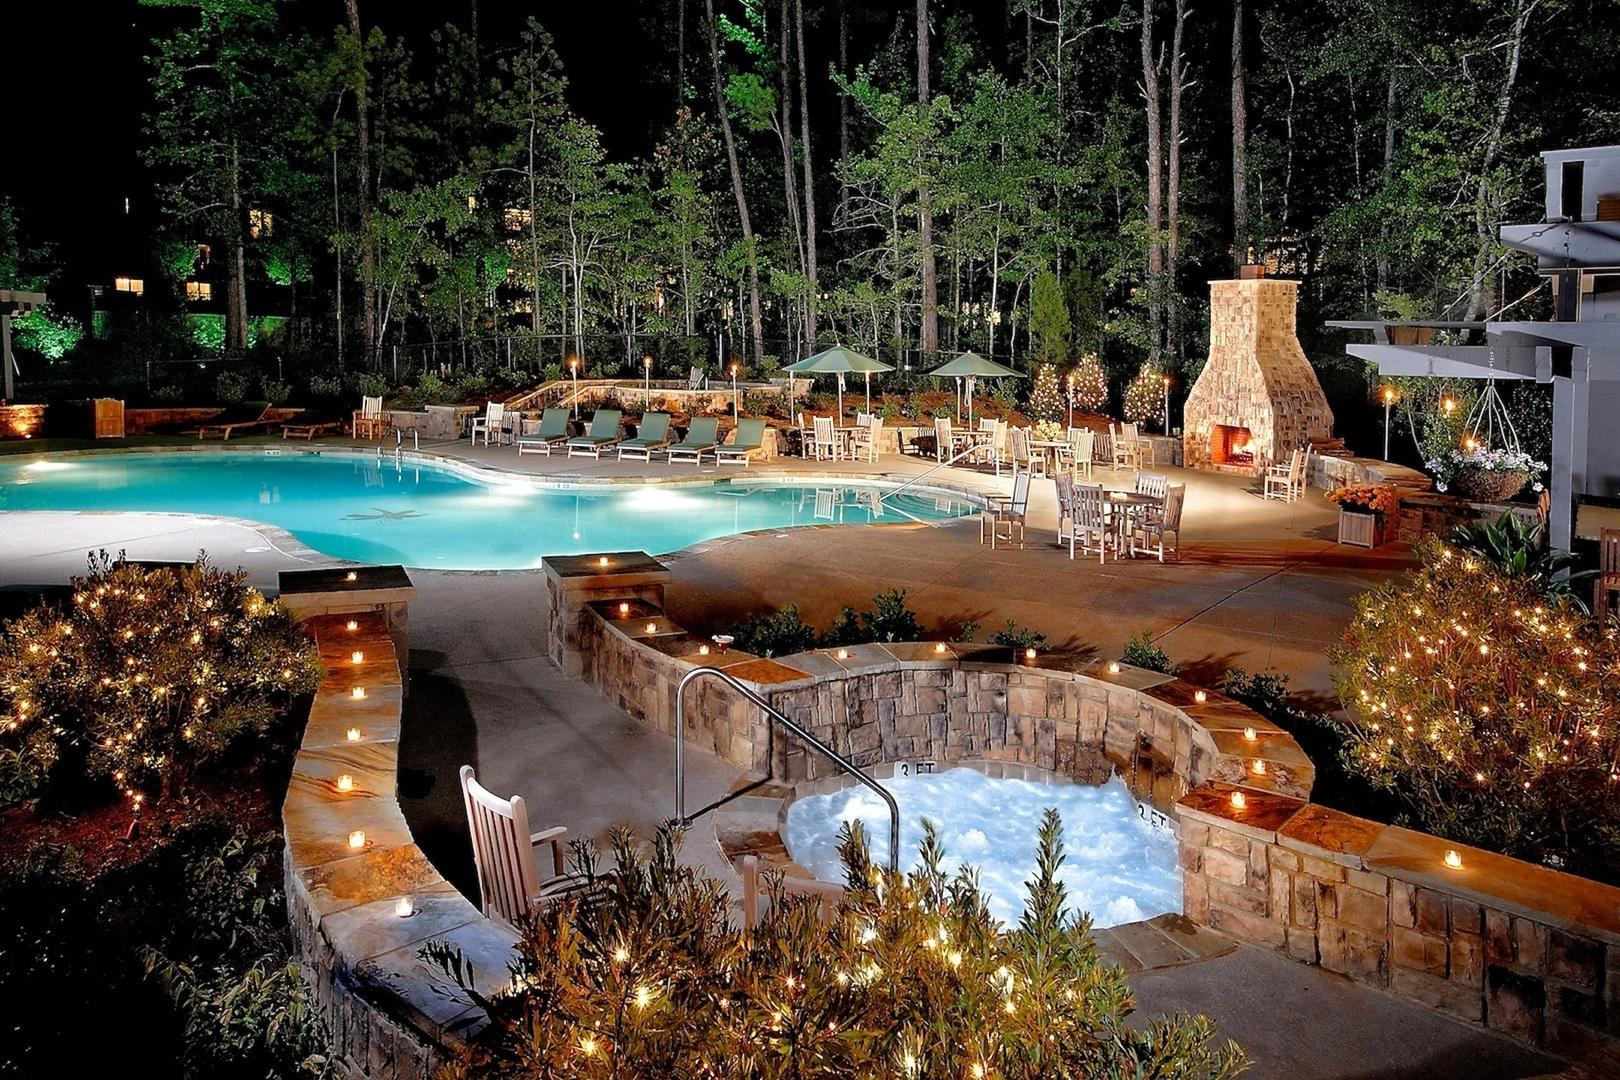 space at The Lodge and Spa at Callaway Gardens